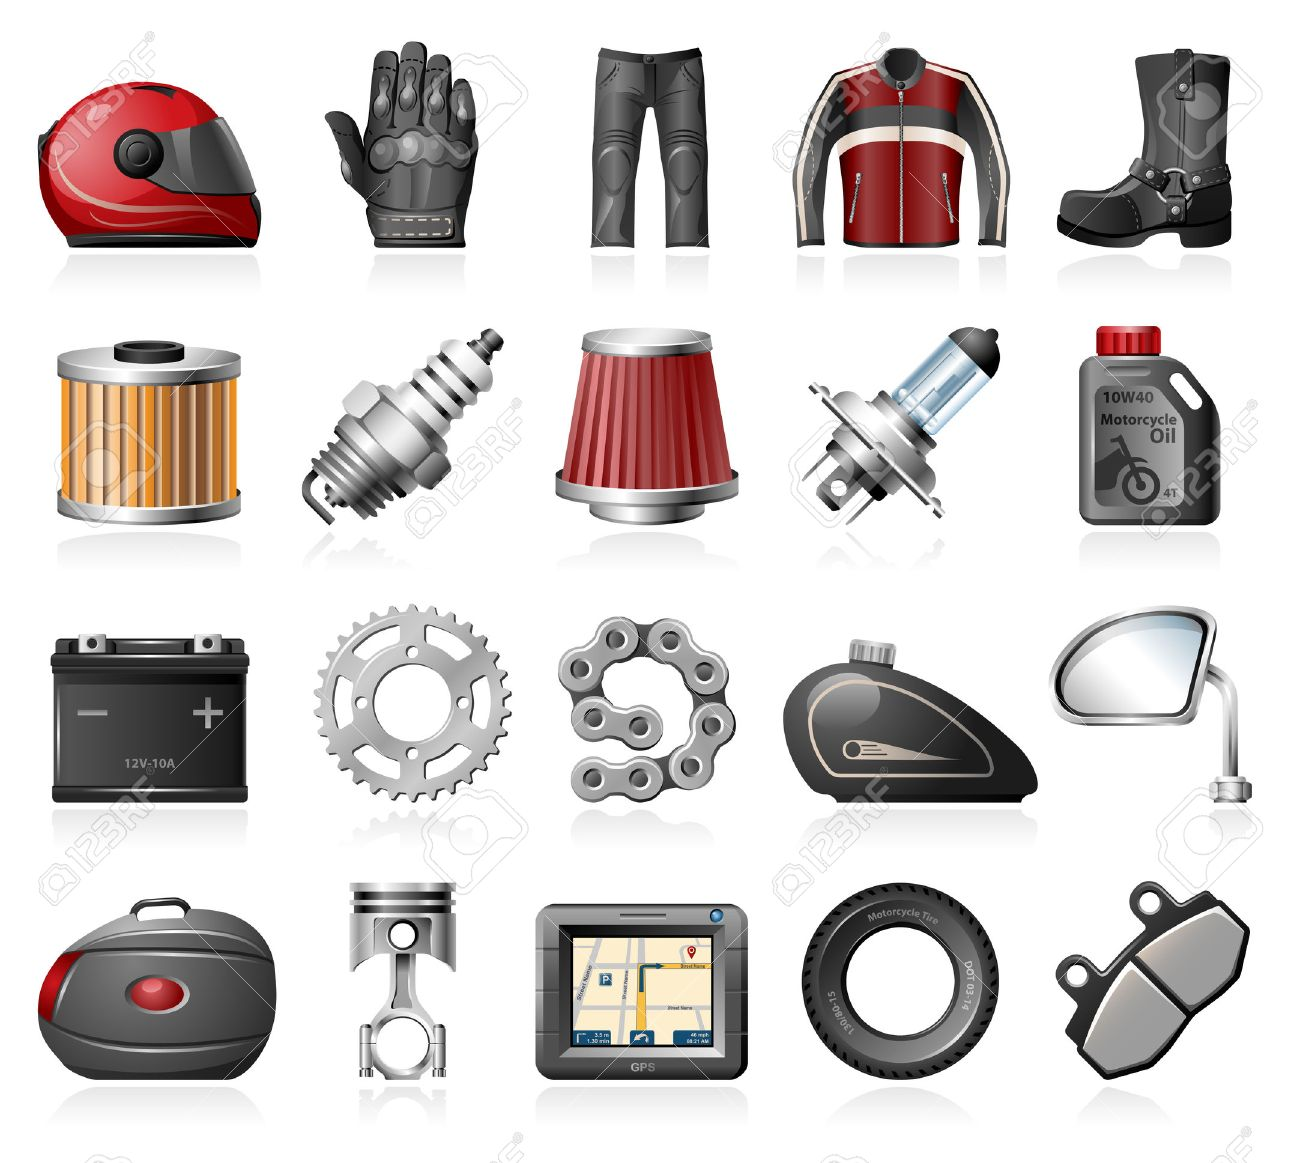 Motorcycle parts and accessories icons - 34361585